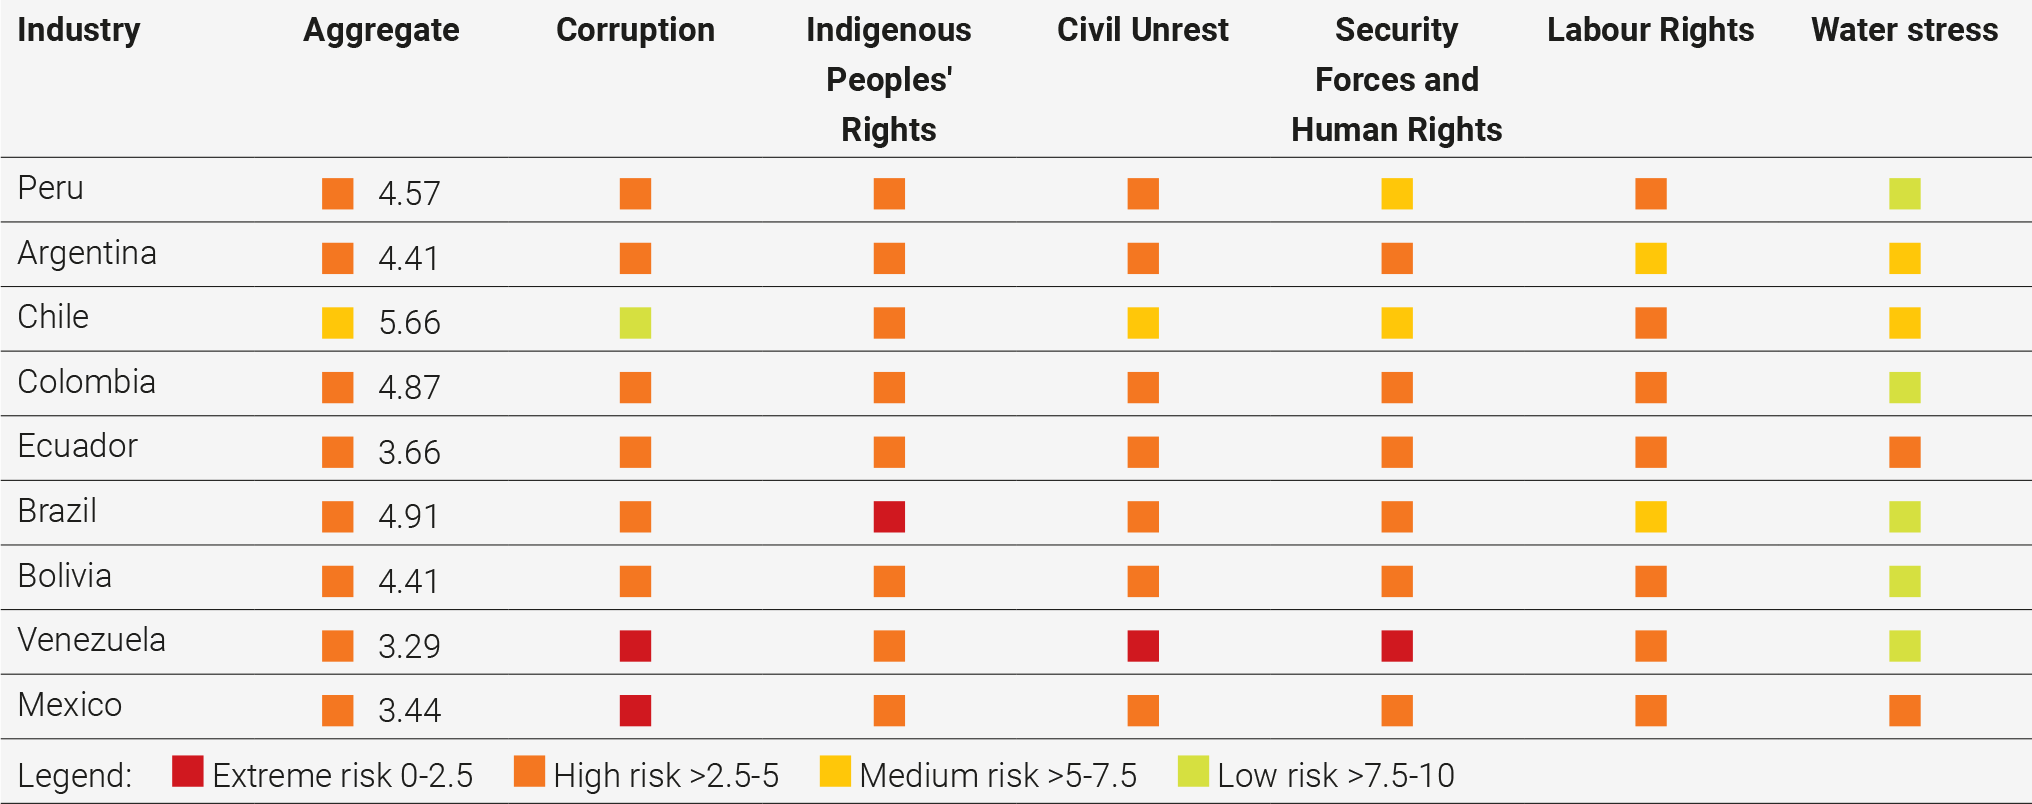 Figure 2 8 out of 9 Latin American countries at 'high risk' for social licence to operate issues